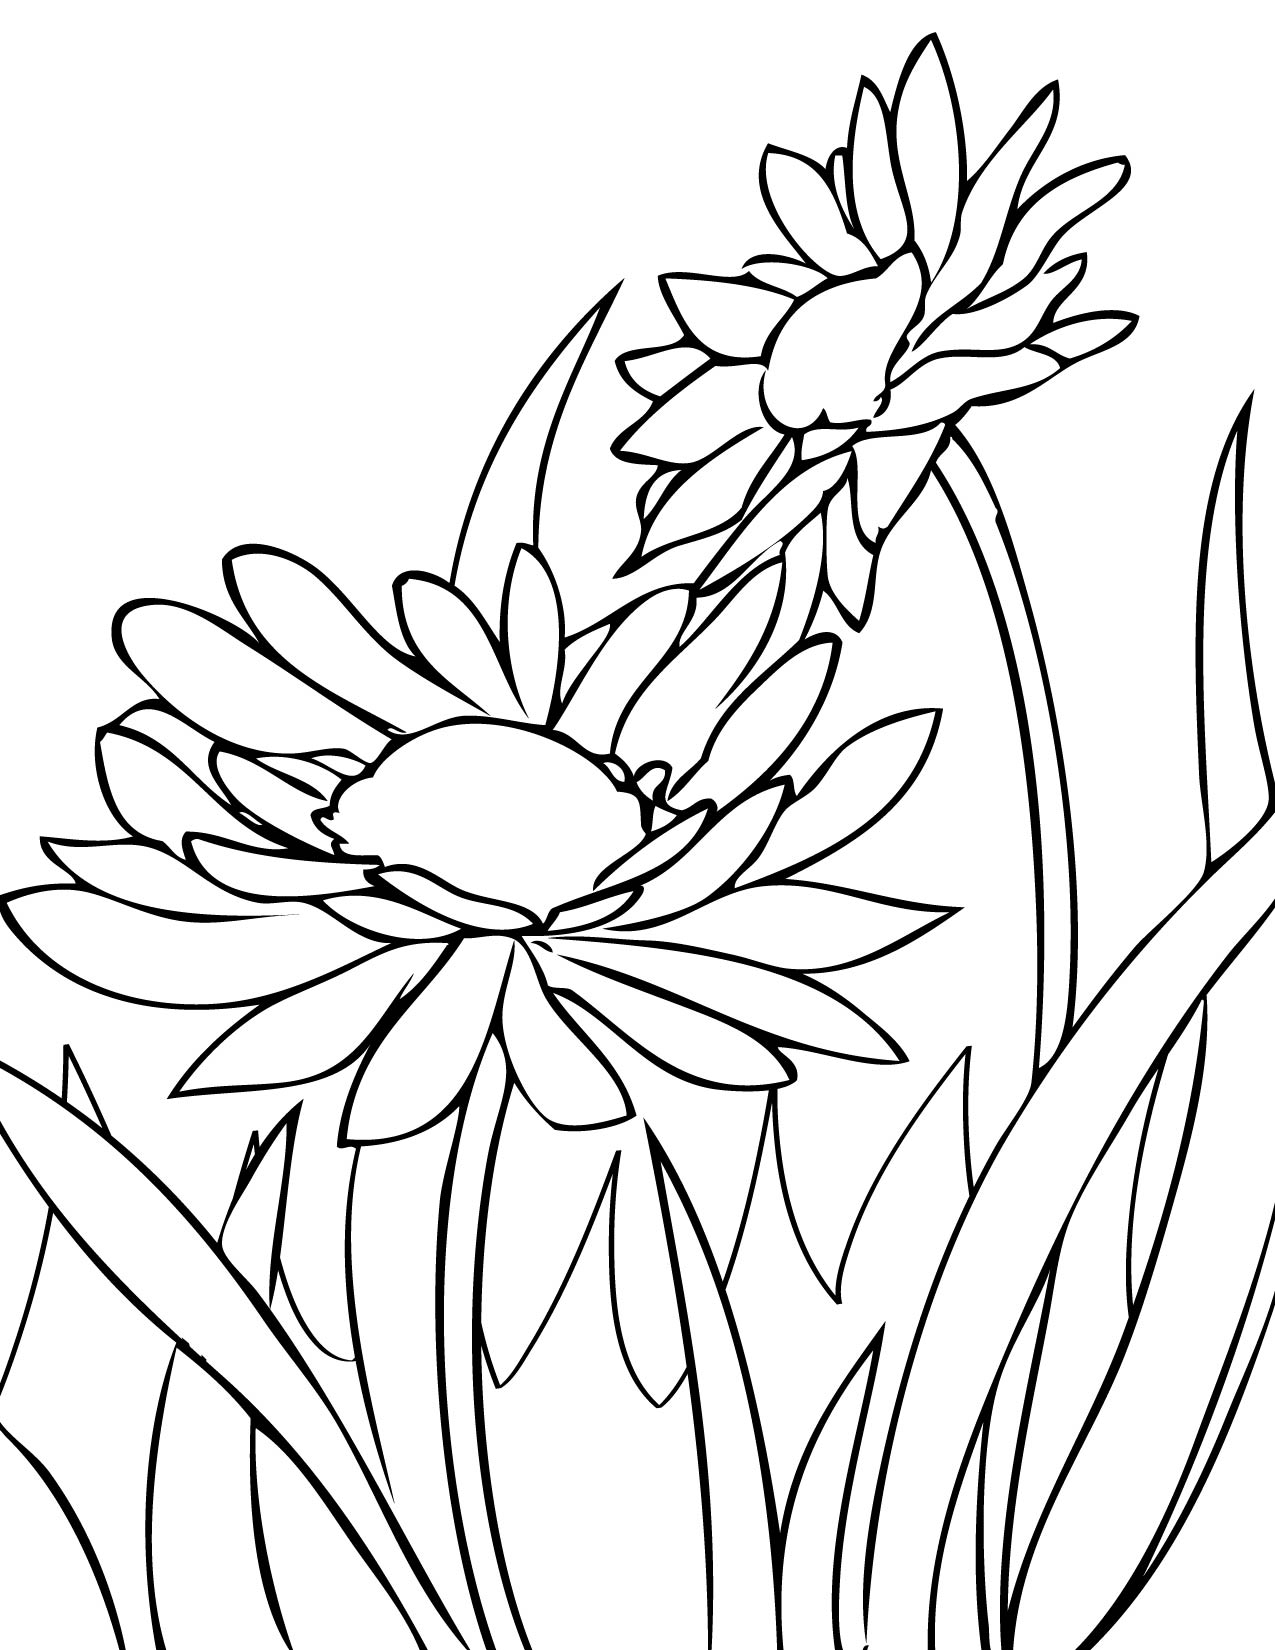 flower coloring pages and facts - photo#27